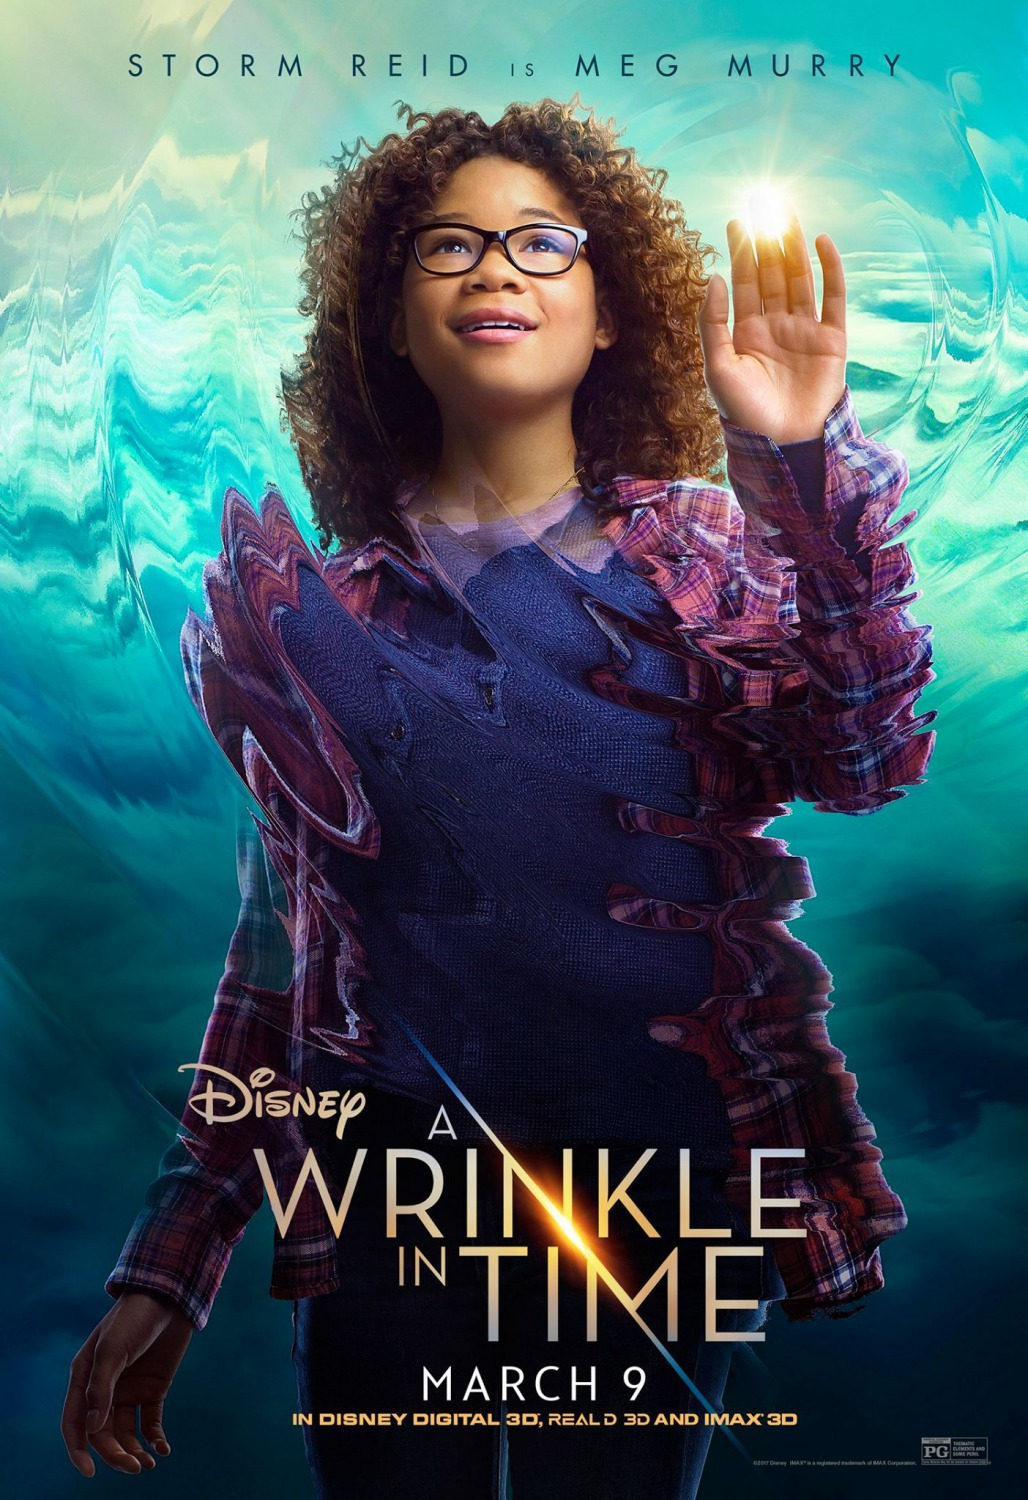 Wrinkle in time movie poster